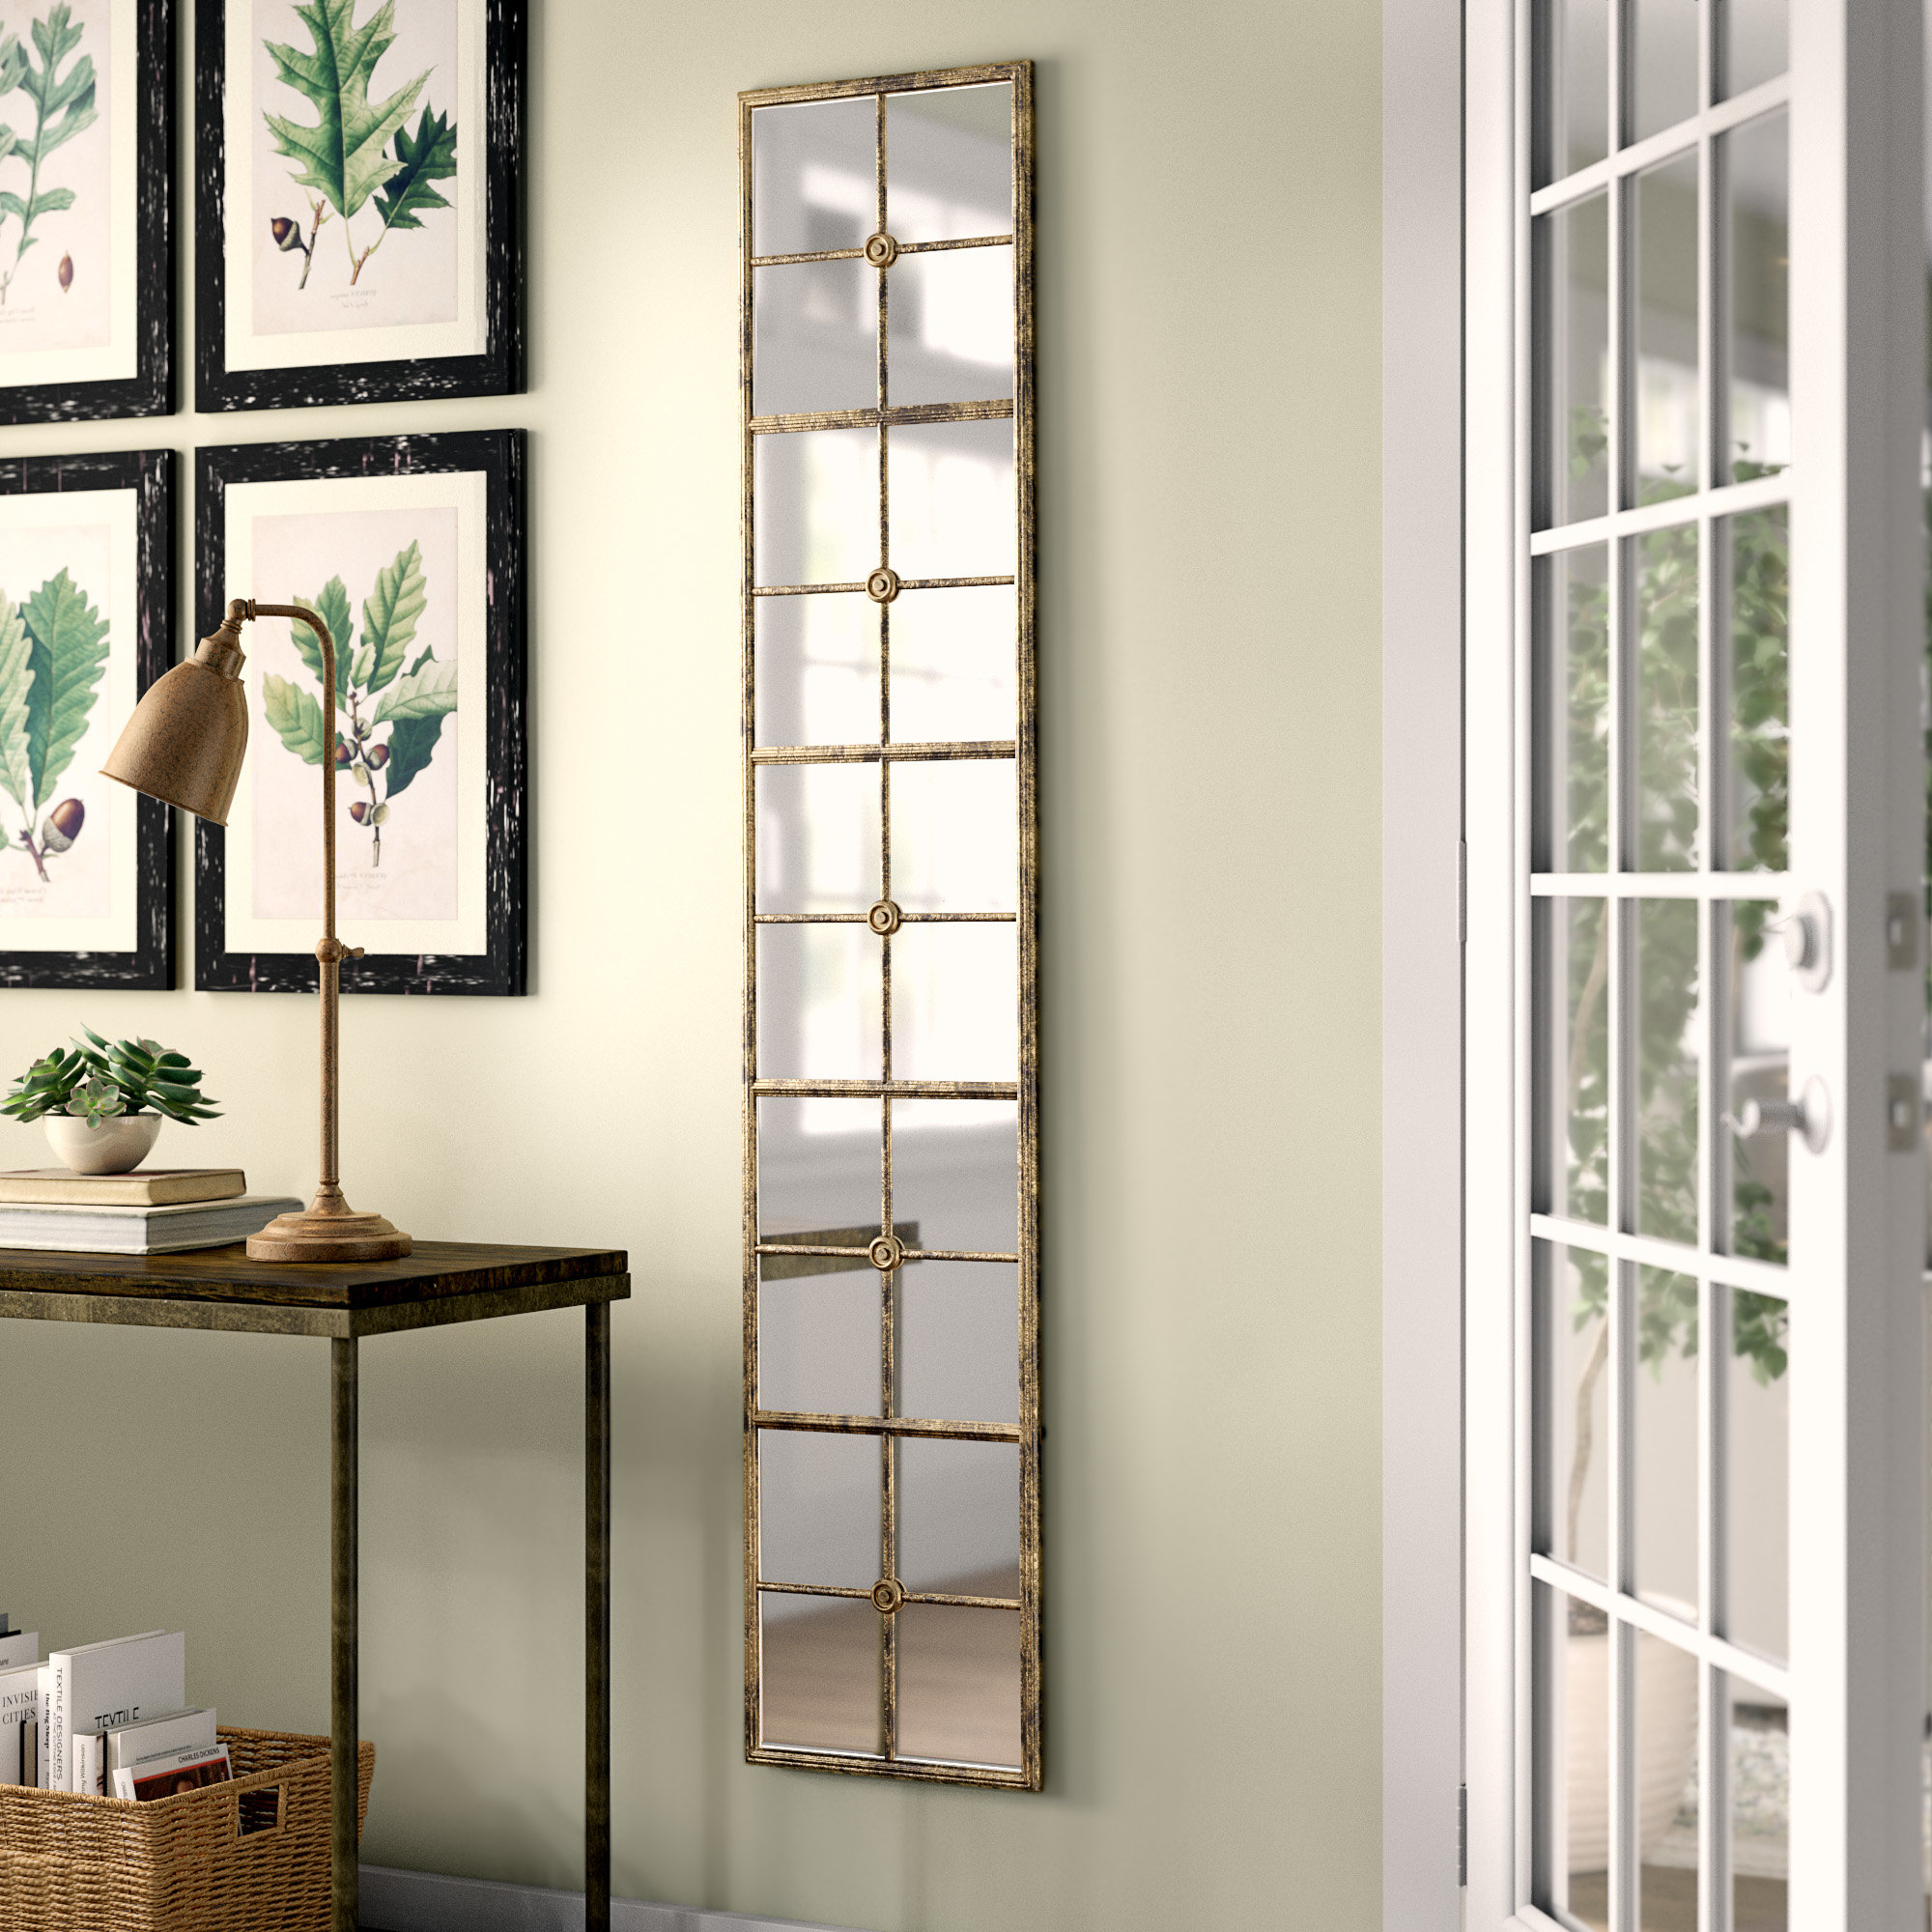 Exciting Full Wall Mirror Design Wardrobe Disney Plans For For Colton Modern & Contemporary Wall Mirrors (View 14 of 30)